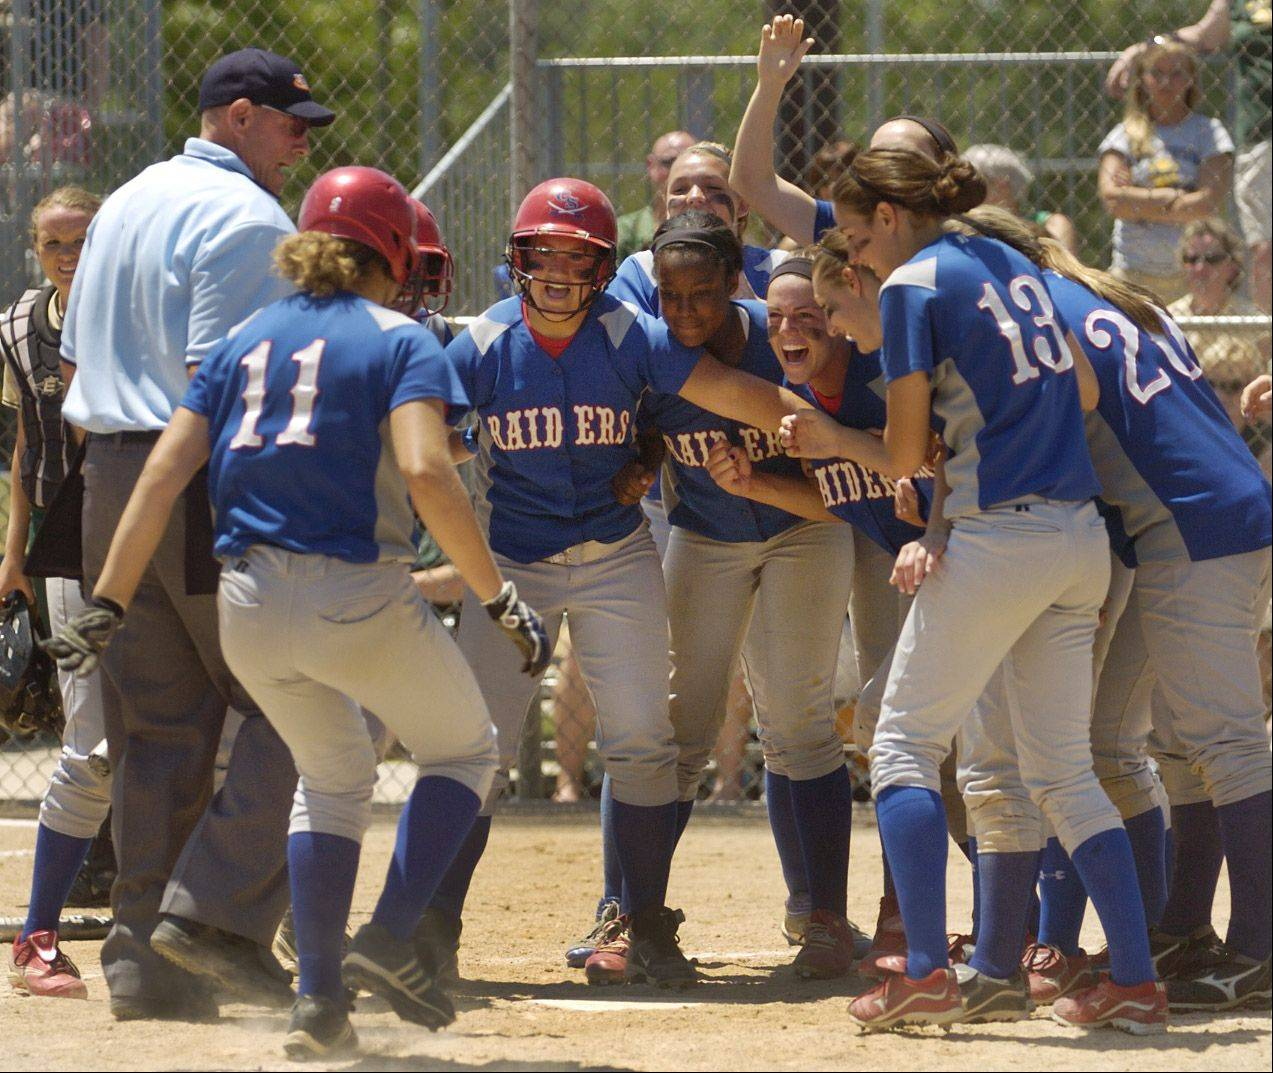 Jane Trzaska (11) is about to be mobbed after hitting a 2-run homer in the fourth inning to give Glenbard South a 6-1 lead over Mattoon during the Class 3A state softball semifinals Friday in East Peoria.